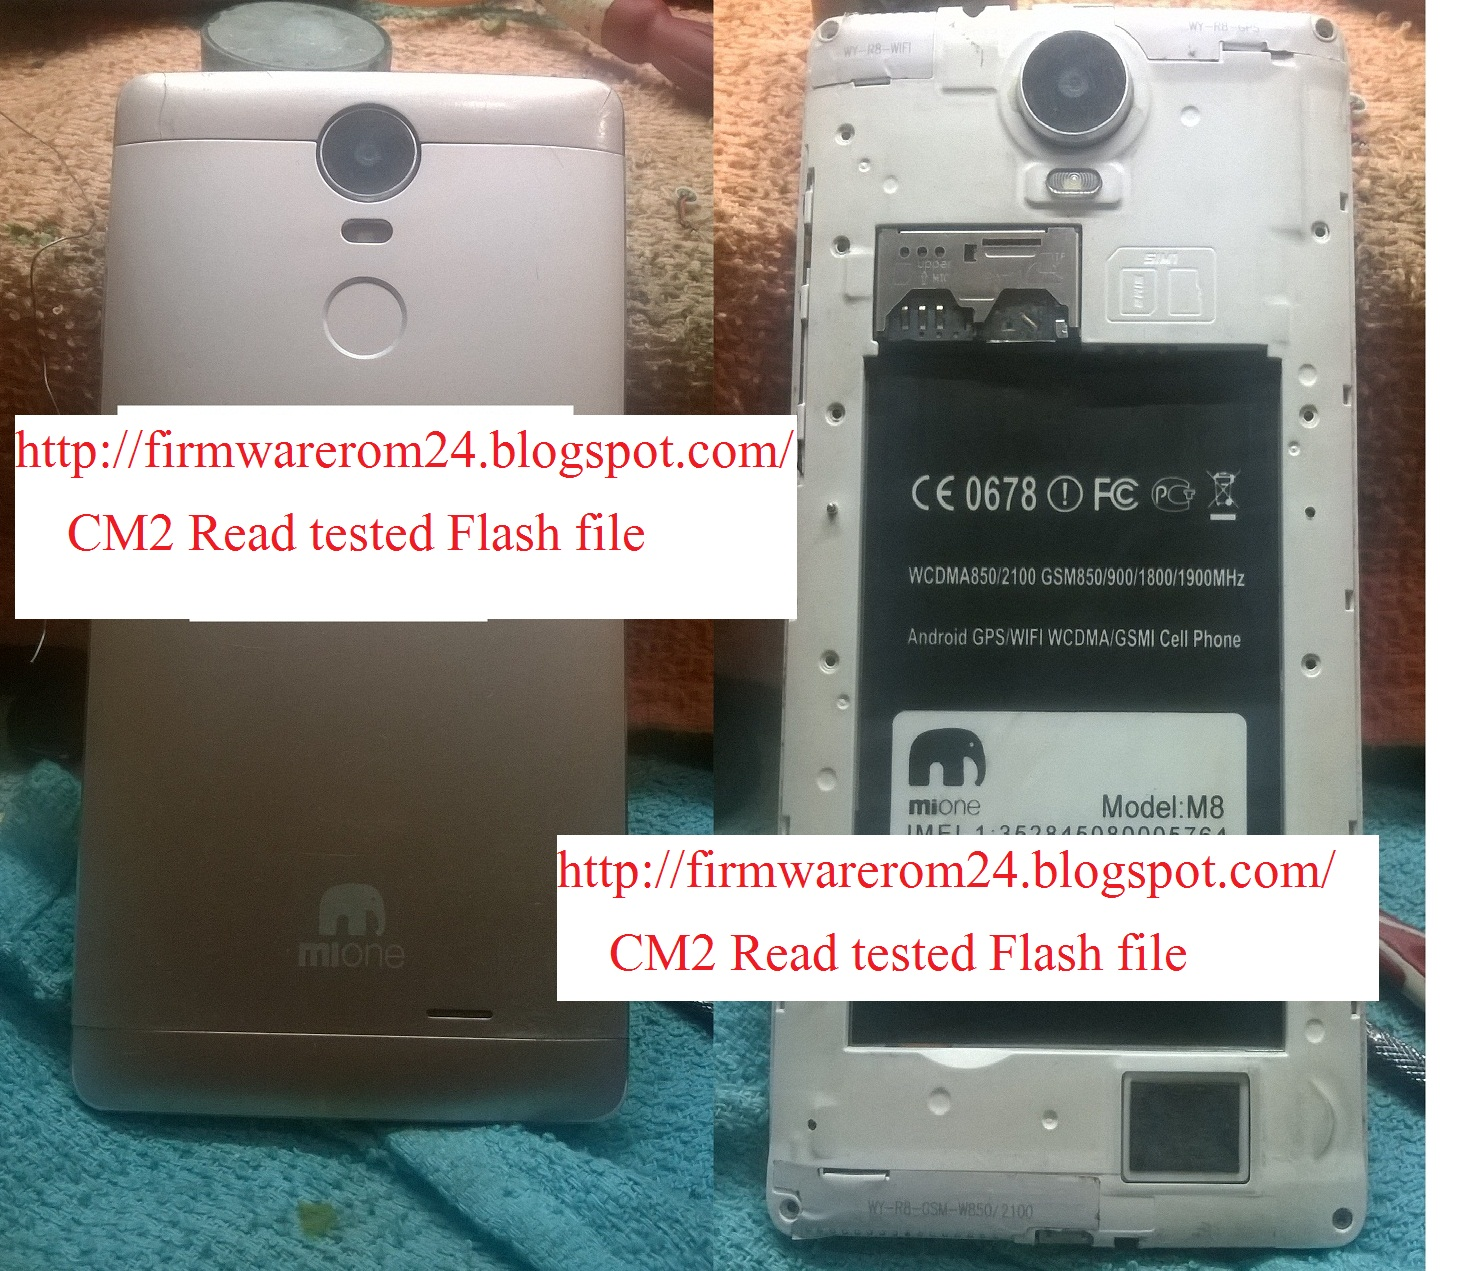 Mione m8 firmware download l Mione m8 firmware download - firmware